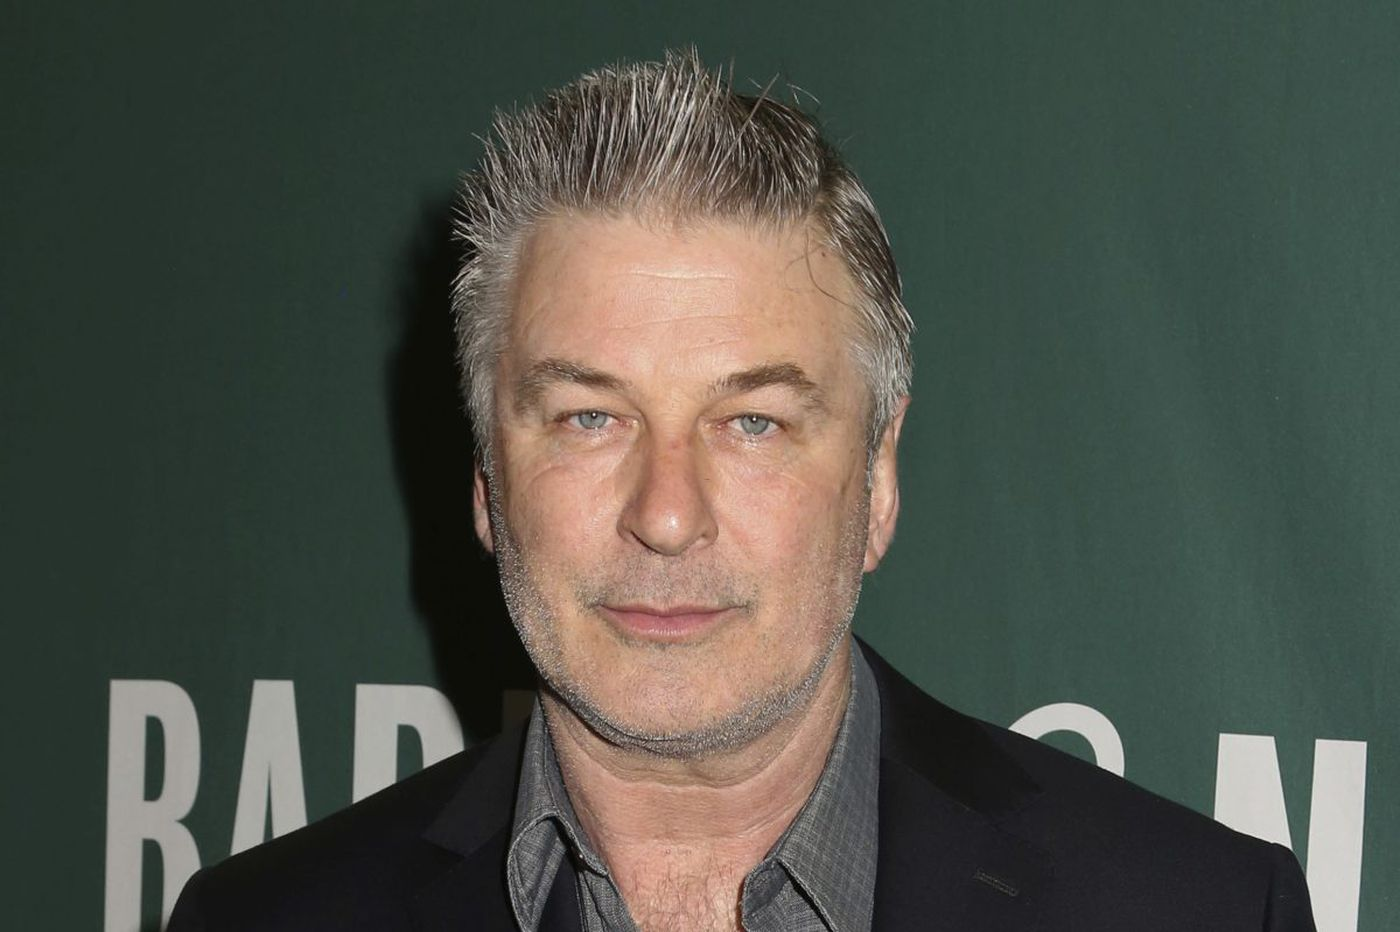 Philly filmmakers working on documentary about DeLorean creator - starring Alec Baldwin